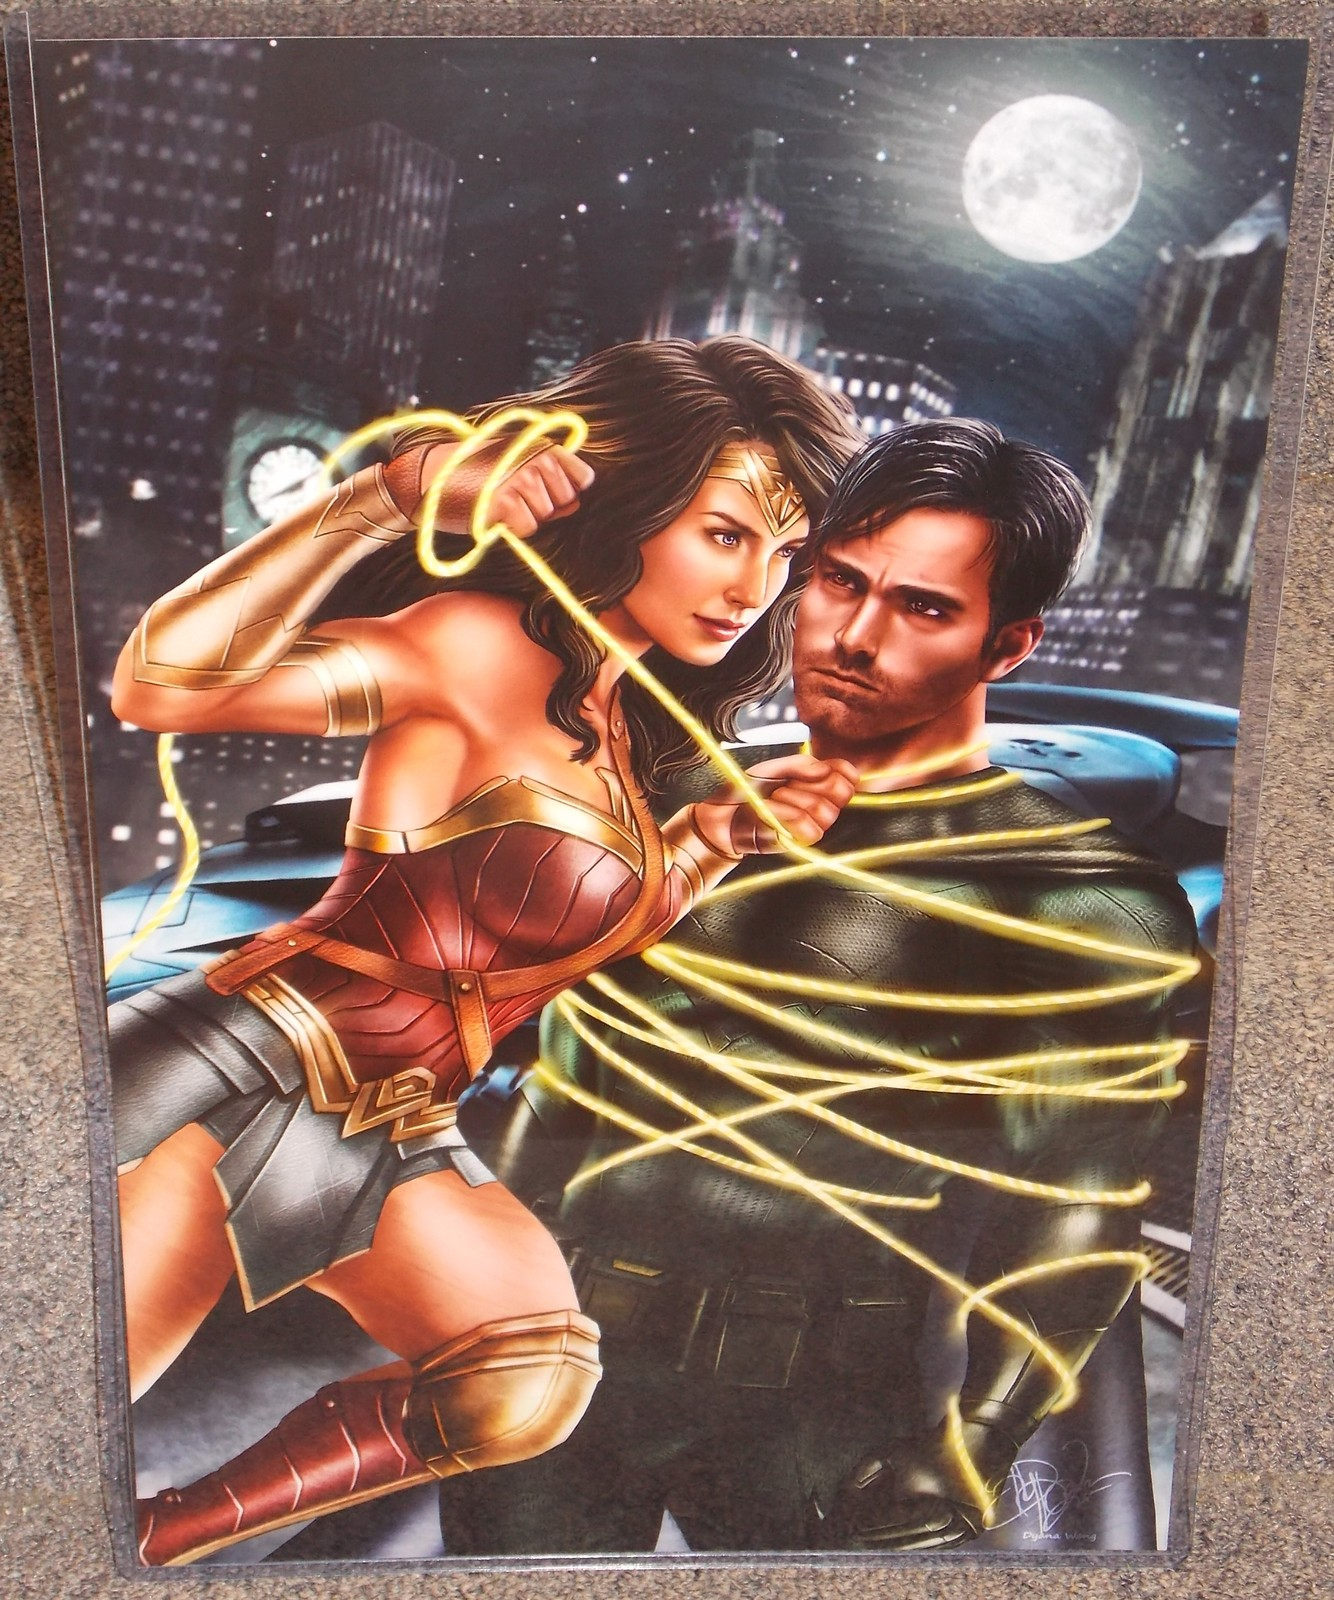 Primary image for Wonder Woman & Batman Glossy Print 11 x 17 In Hard Plastic Sleeve